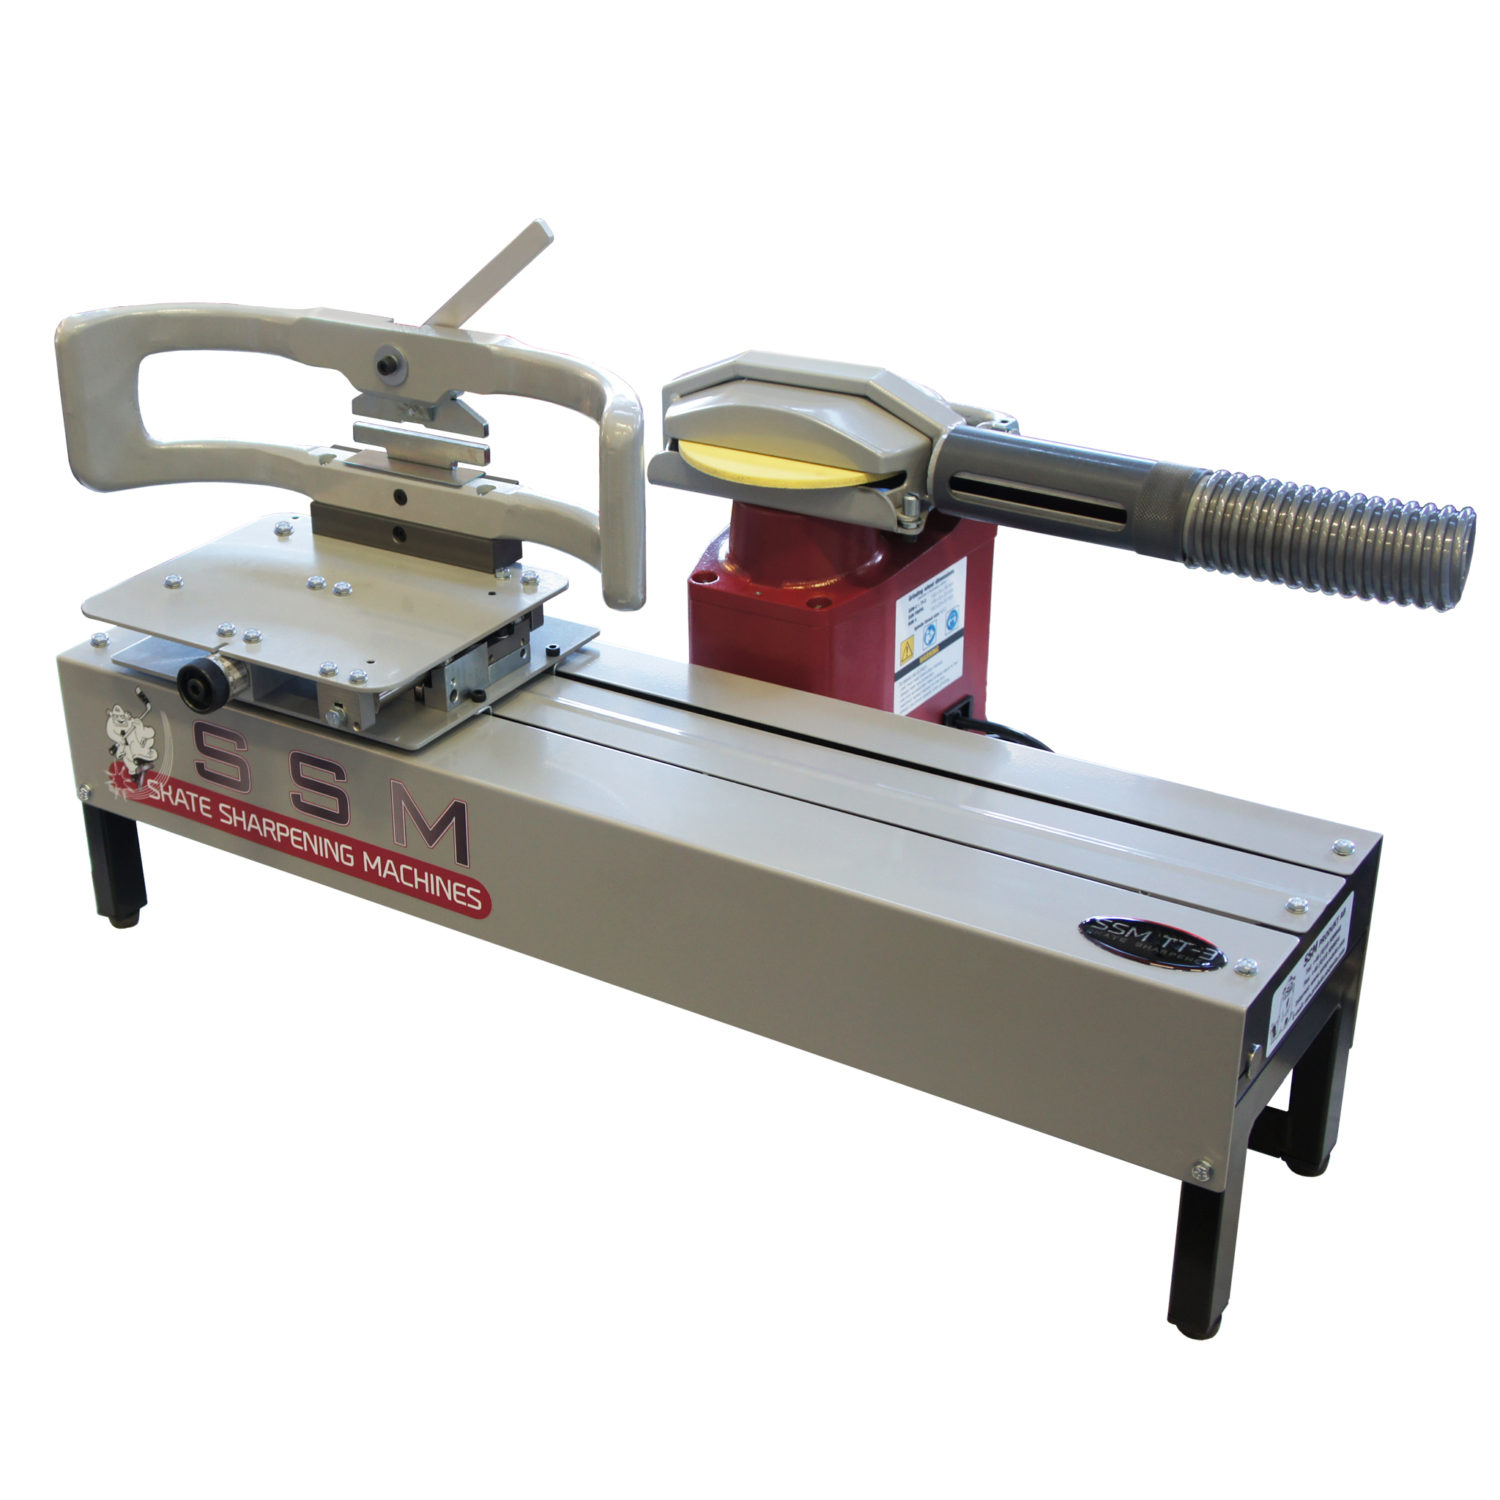 Skate sharpener SSM TT-3